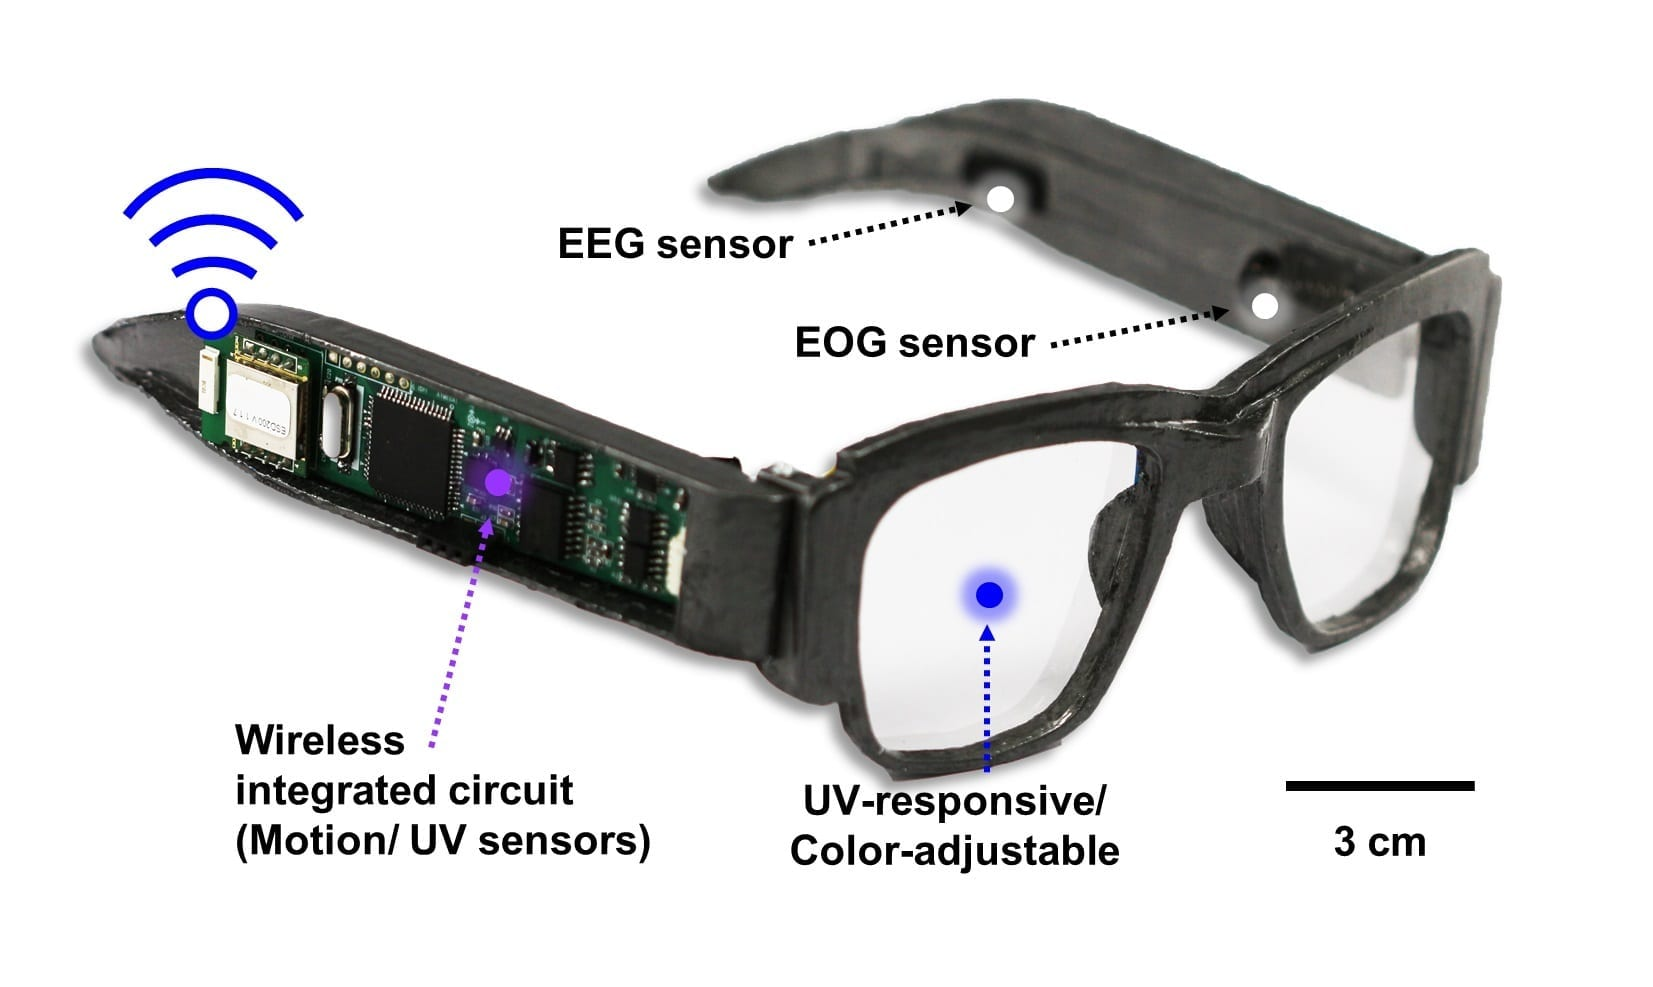 Smart e-glasses can wirelessly monitor EEG and EOG signals, UV intensity, and body movements, while also acting as sunglasses and a human-machine interface. Credit: Adapted from ACS Applied Materials & Interfaces 2020, DOI: 10.1021/acsami.0c03110